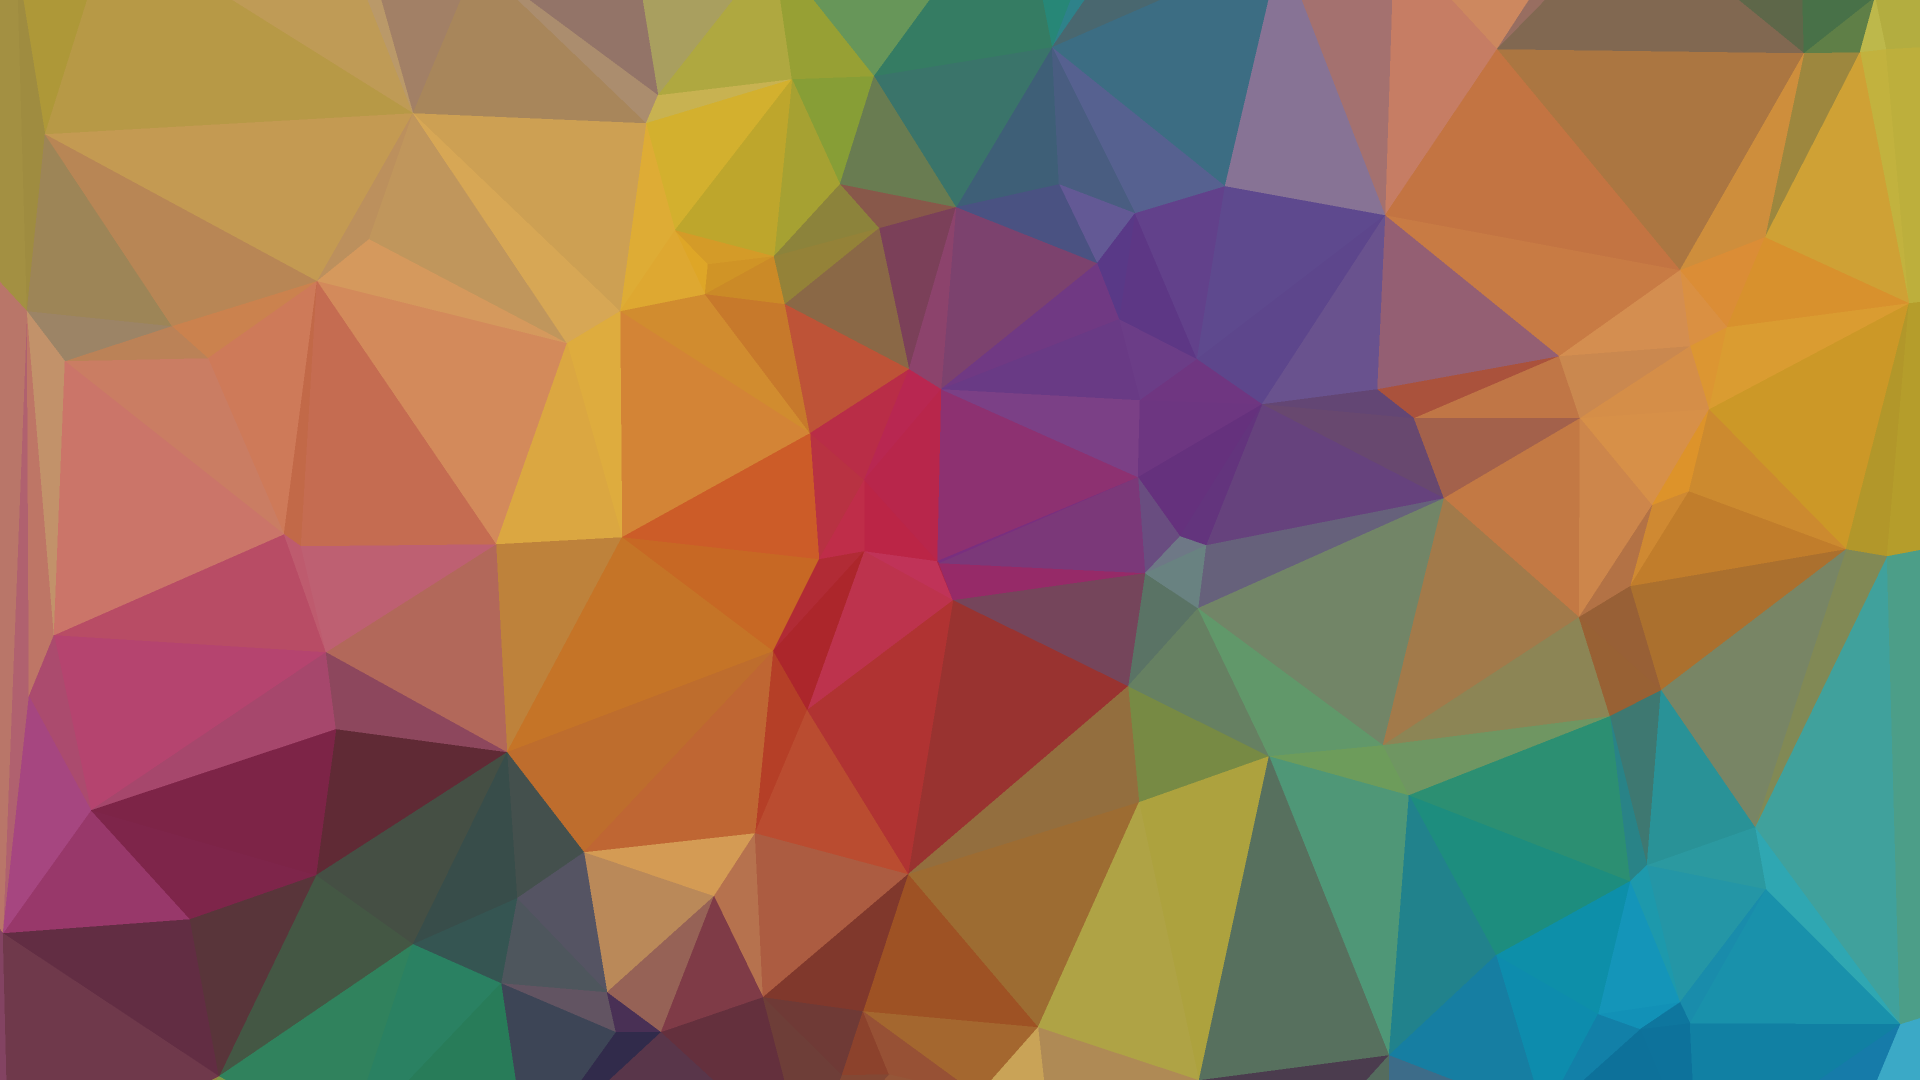 Wallpaper geometric color 28 1080p hd by airworldking on - Geometric wallpaper colorful ...